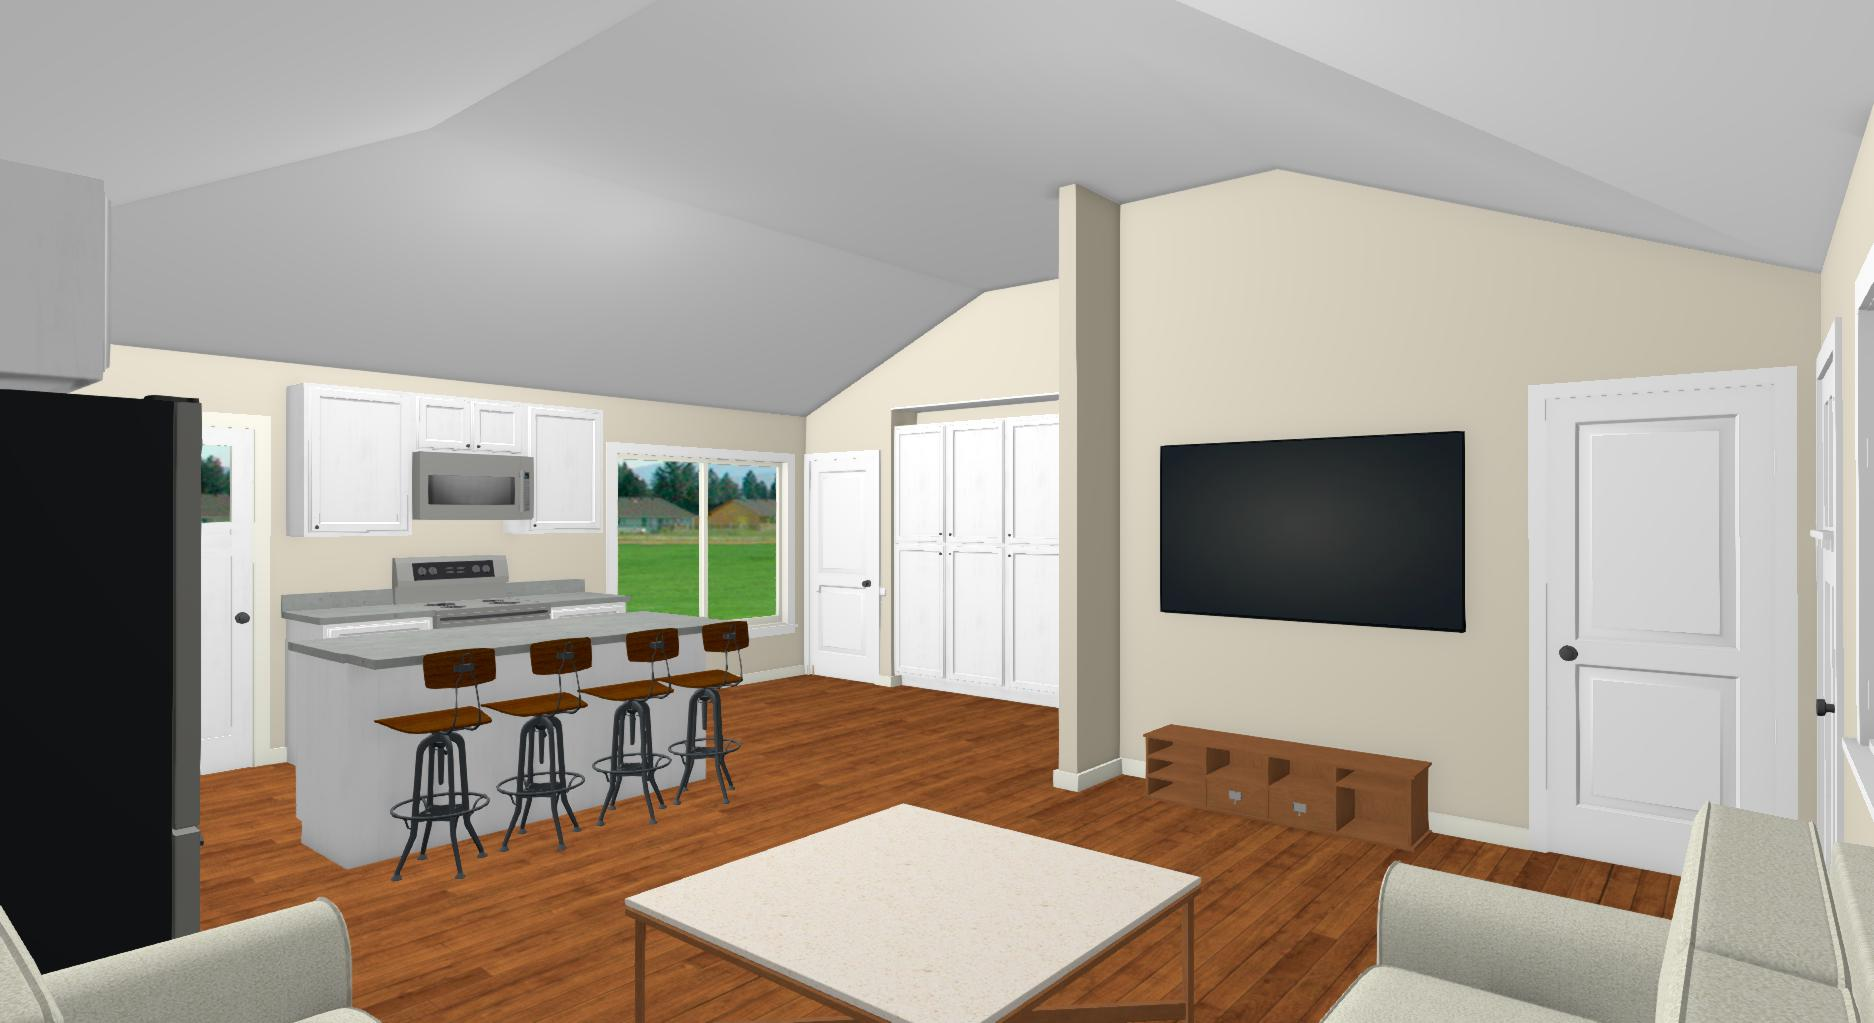 Home rendering from the University of Denver team.